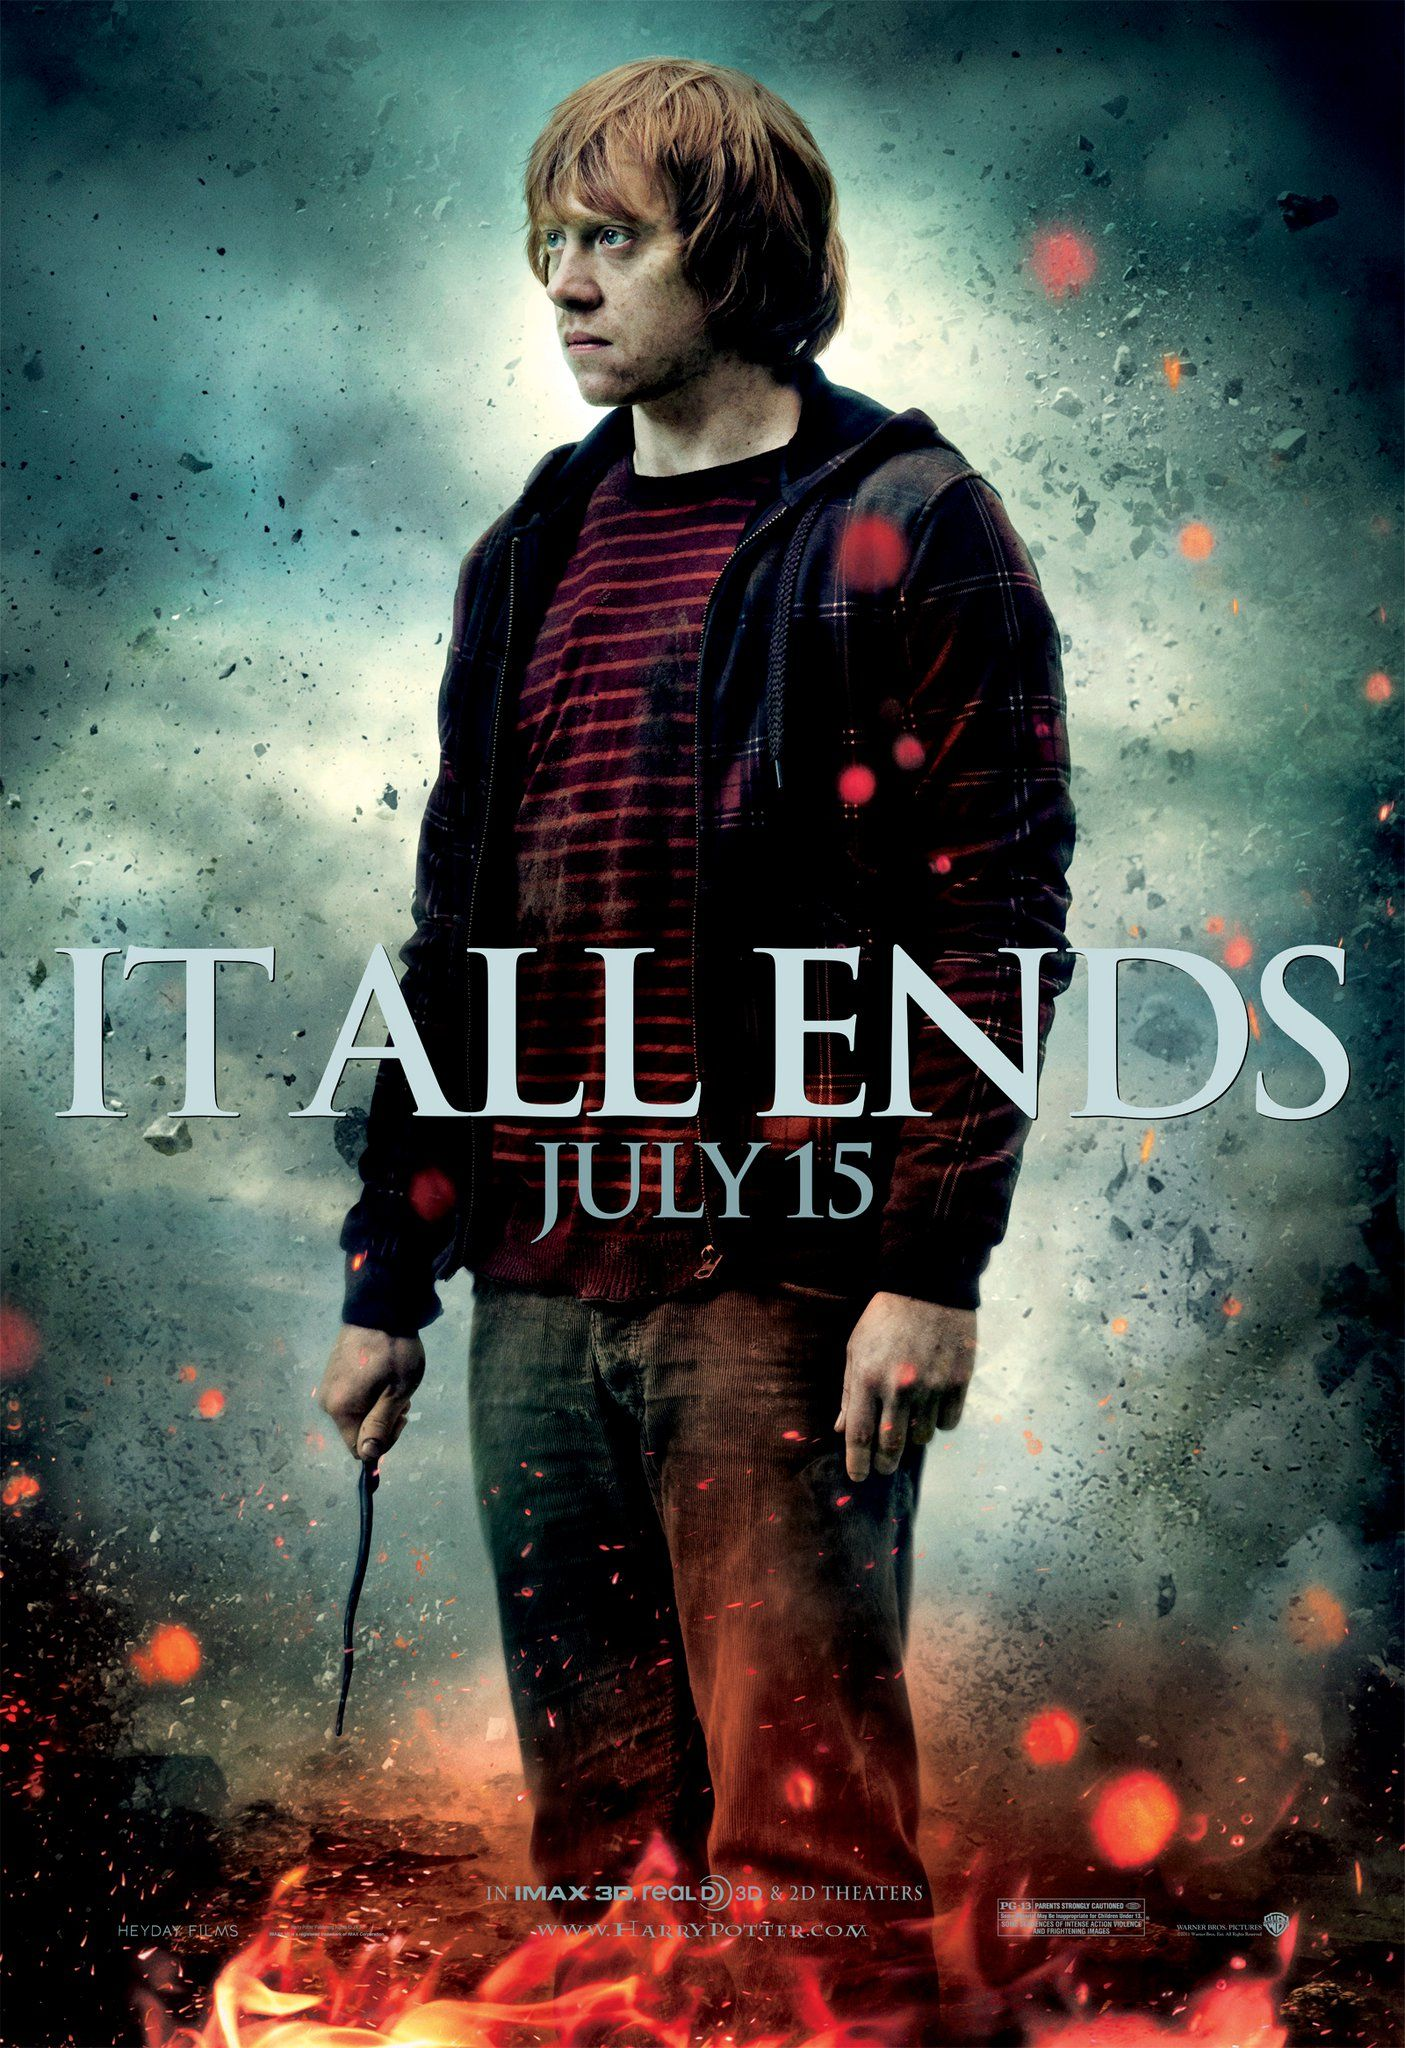 Ron Weasley HarryPotter And The Deathly Hallows Part 2 It All Ends